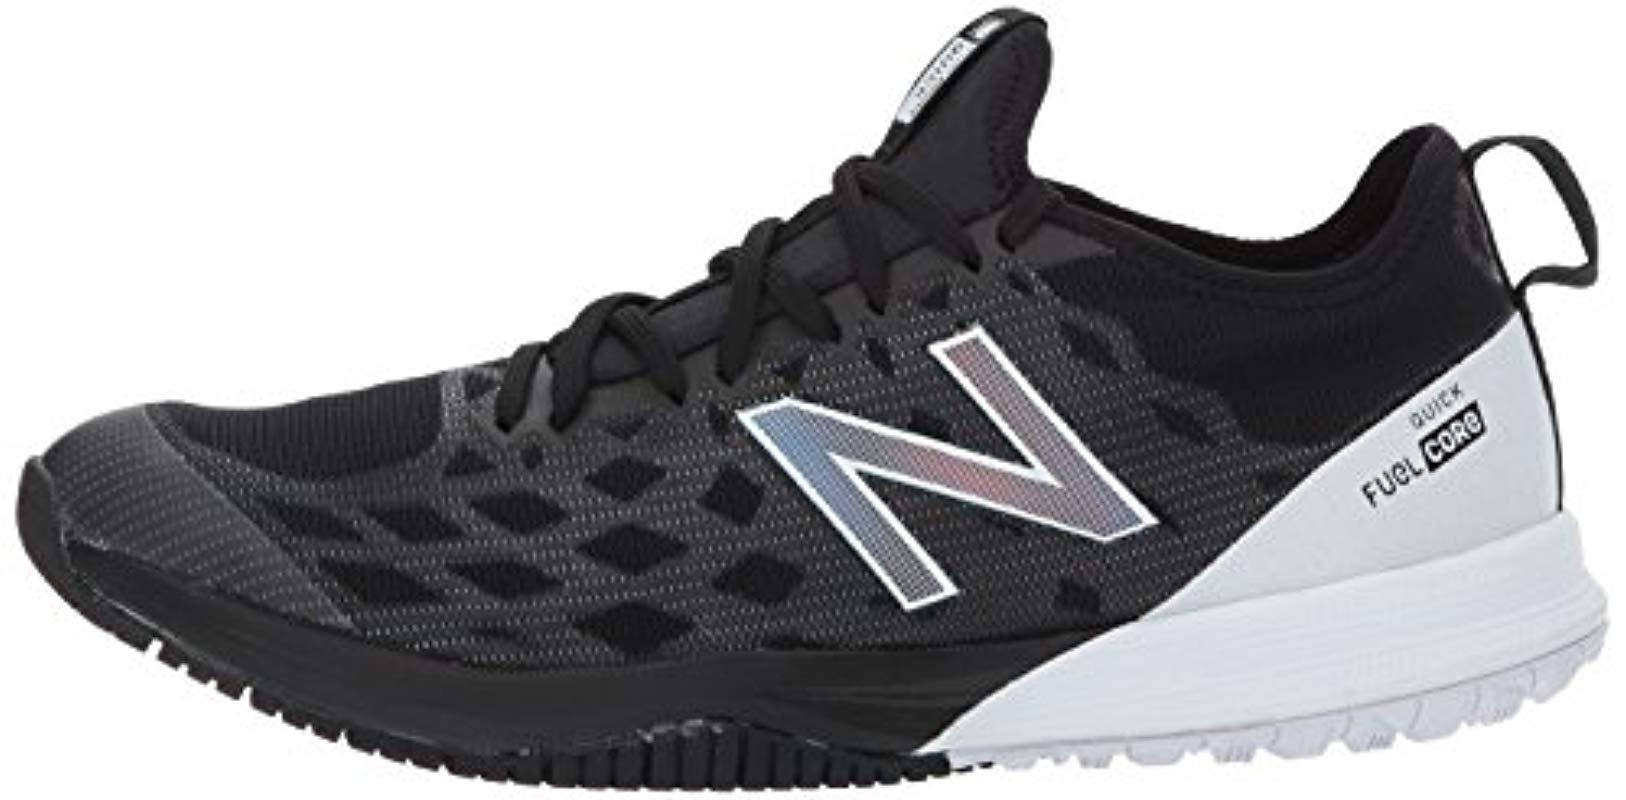 New Balance Fuelcore Quick V3 Running Shoes in Black/White (Black ...